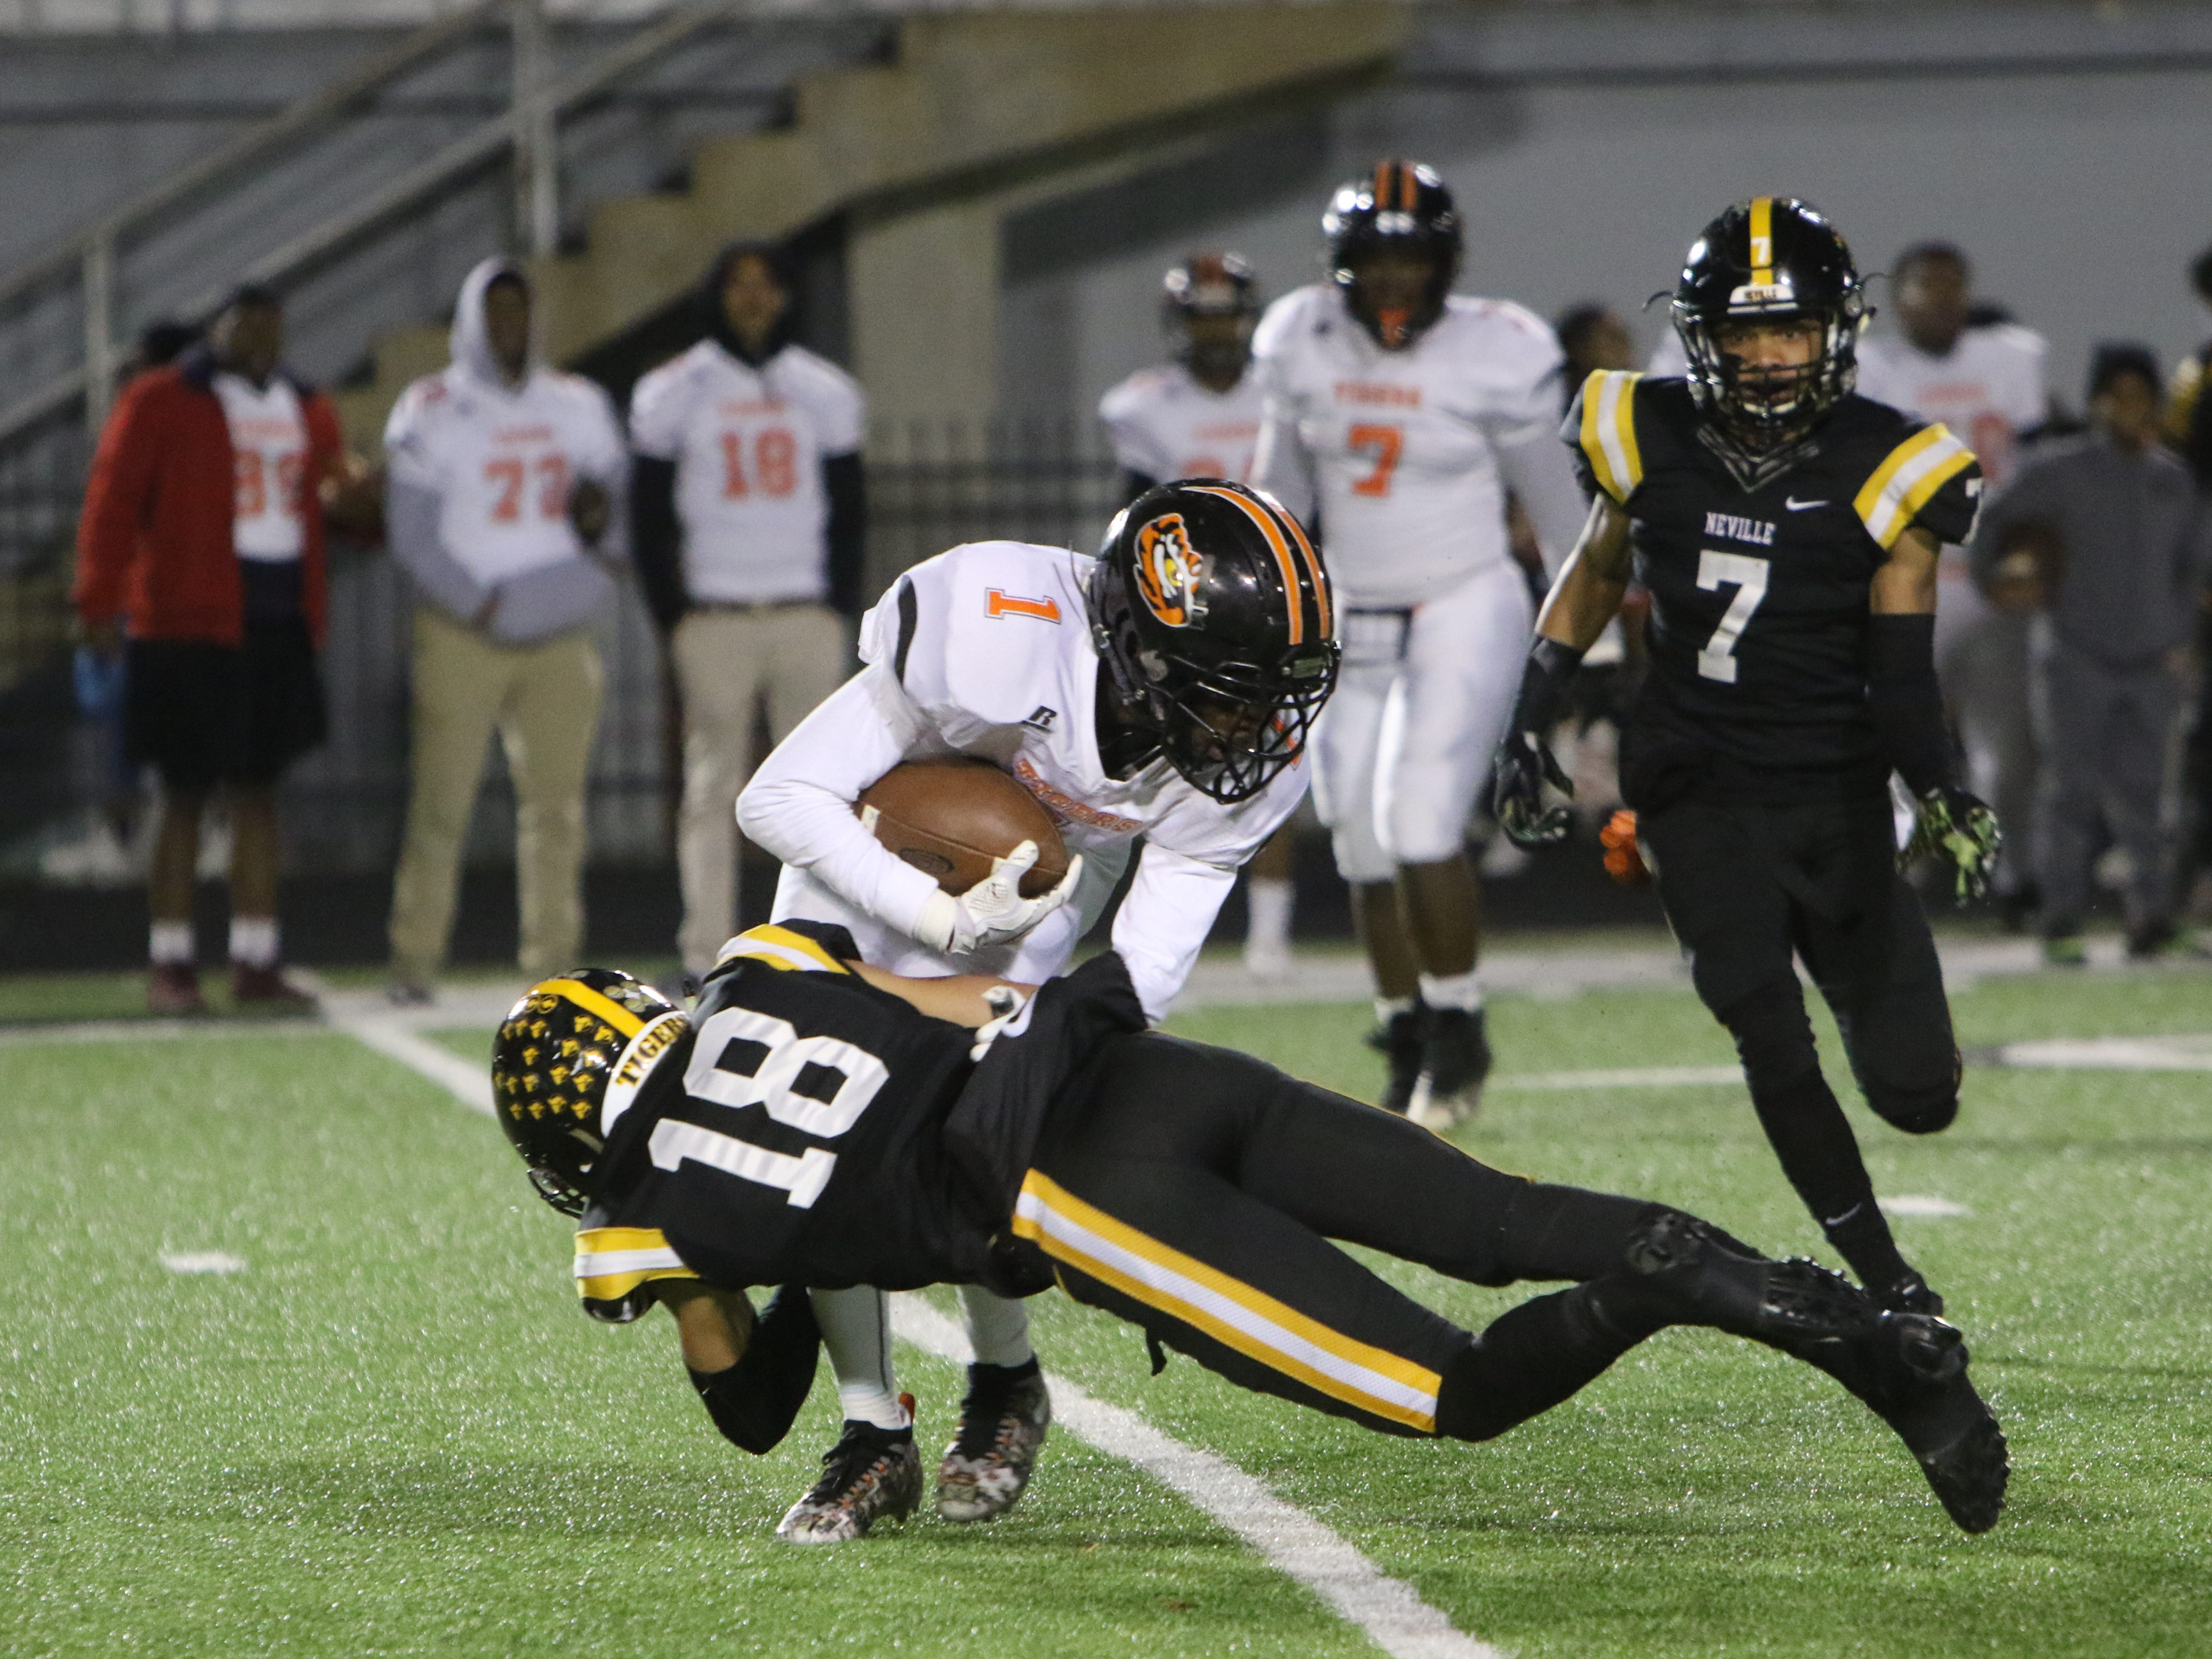 Neville defeats Opelousas 55-28 in the first round of playoff football at Neville High School in Monroe, La. on Nov. 9.